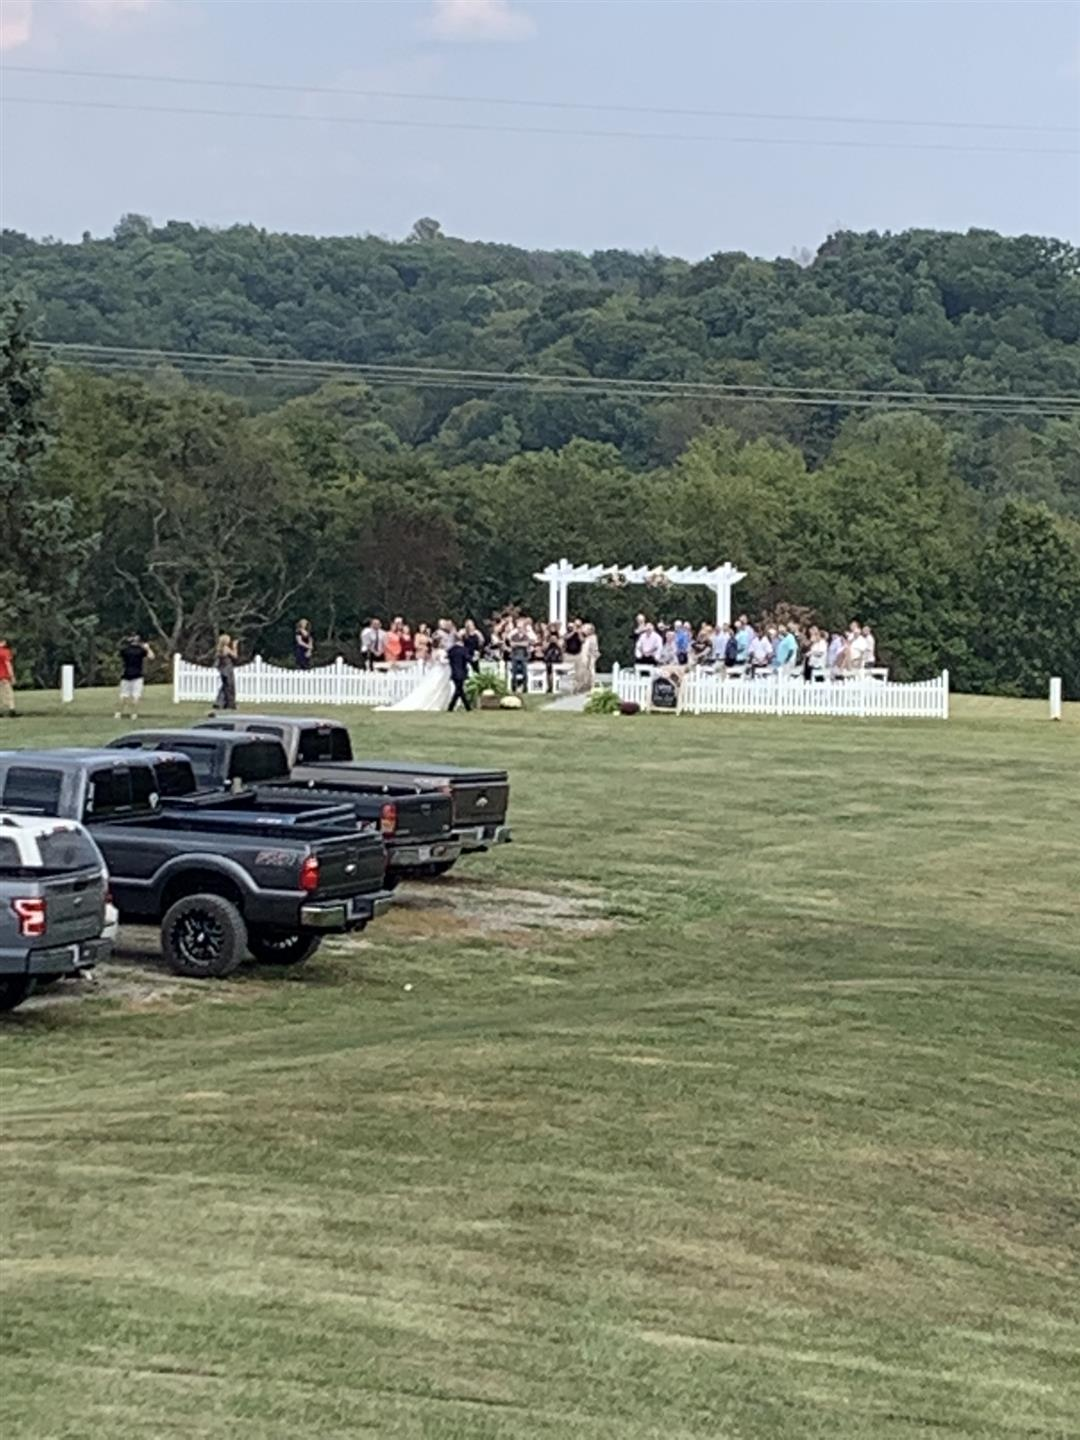 A far away view of a wedding reception.